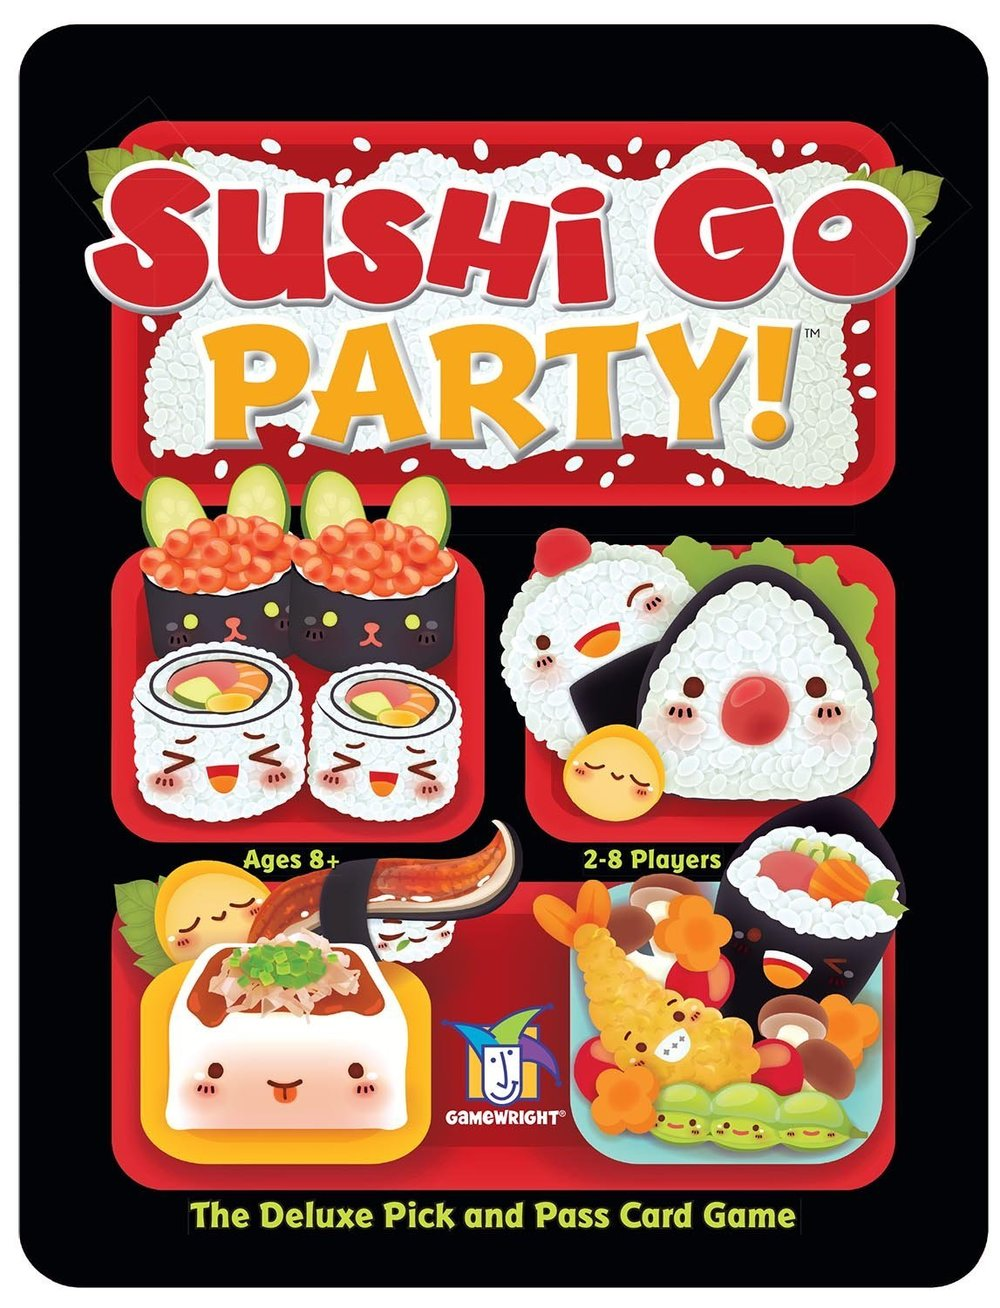 Sushi Go Party - PLAYERS: 2 -8In Sushi Go Party, the goal is to grab the best combination of sushi dish cards as they get passed around the group.Players score points for collecting different sets of cards as individual card piles get passed around the table. Each turn you receive a pile of cards from the player next to you and may pick one card to keep in your hand. Turns continue until all the cards have been taken. Points are scored based on the type of card you have (sushi, eggrolls, etc...) and how many of the same kind you have.Sushi Go Party is a great and fast paced card game for groups who like card games and are looking for a individualized game to play.